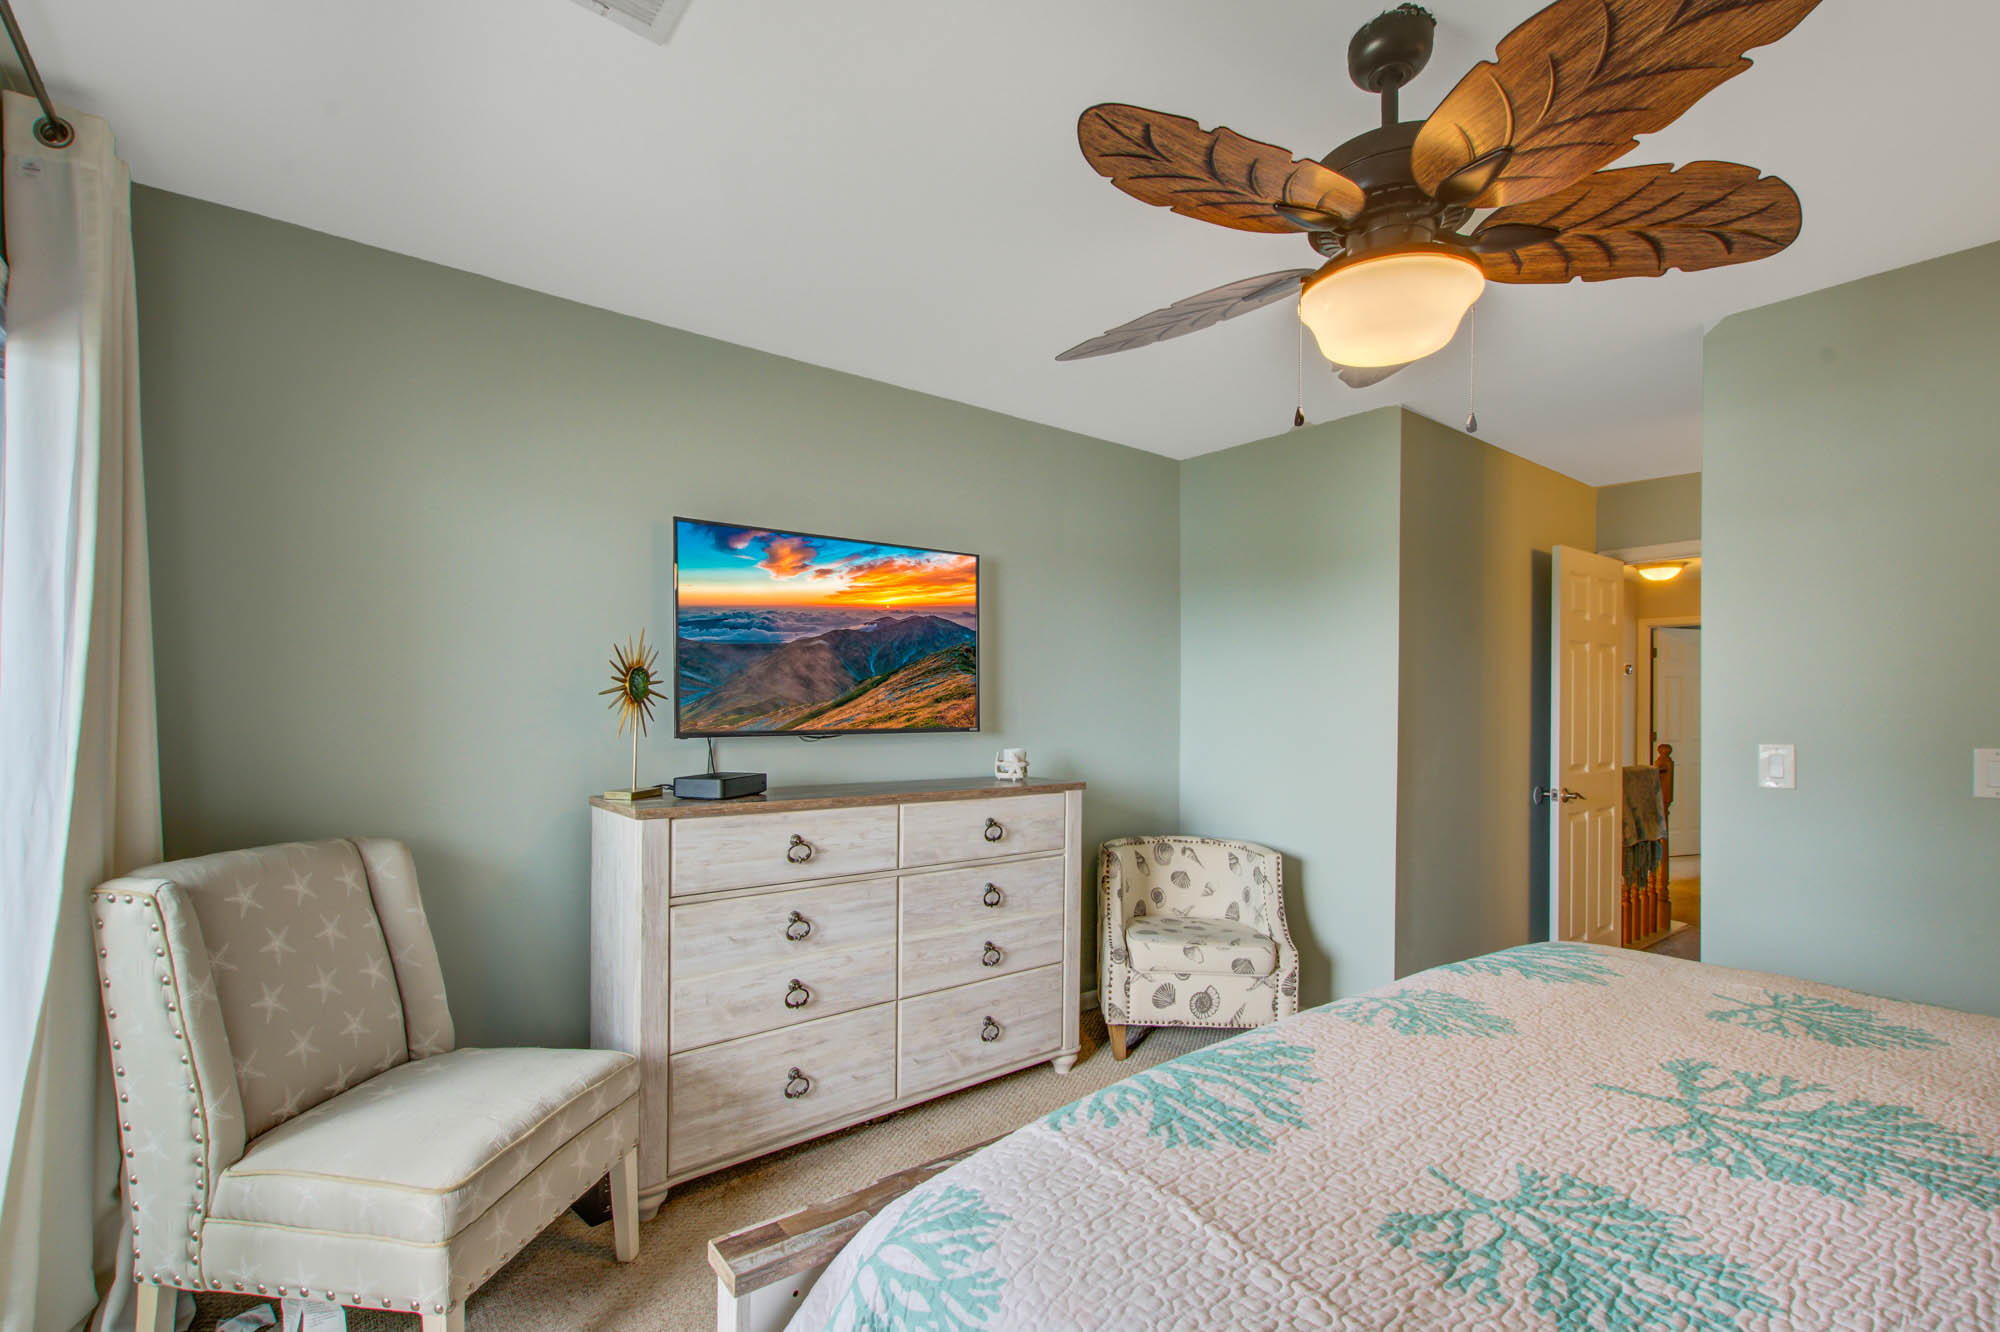 Mariners Cay Homes For Sale - 56 Mariners Cay, Folly Beach, SC - 2